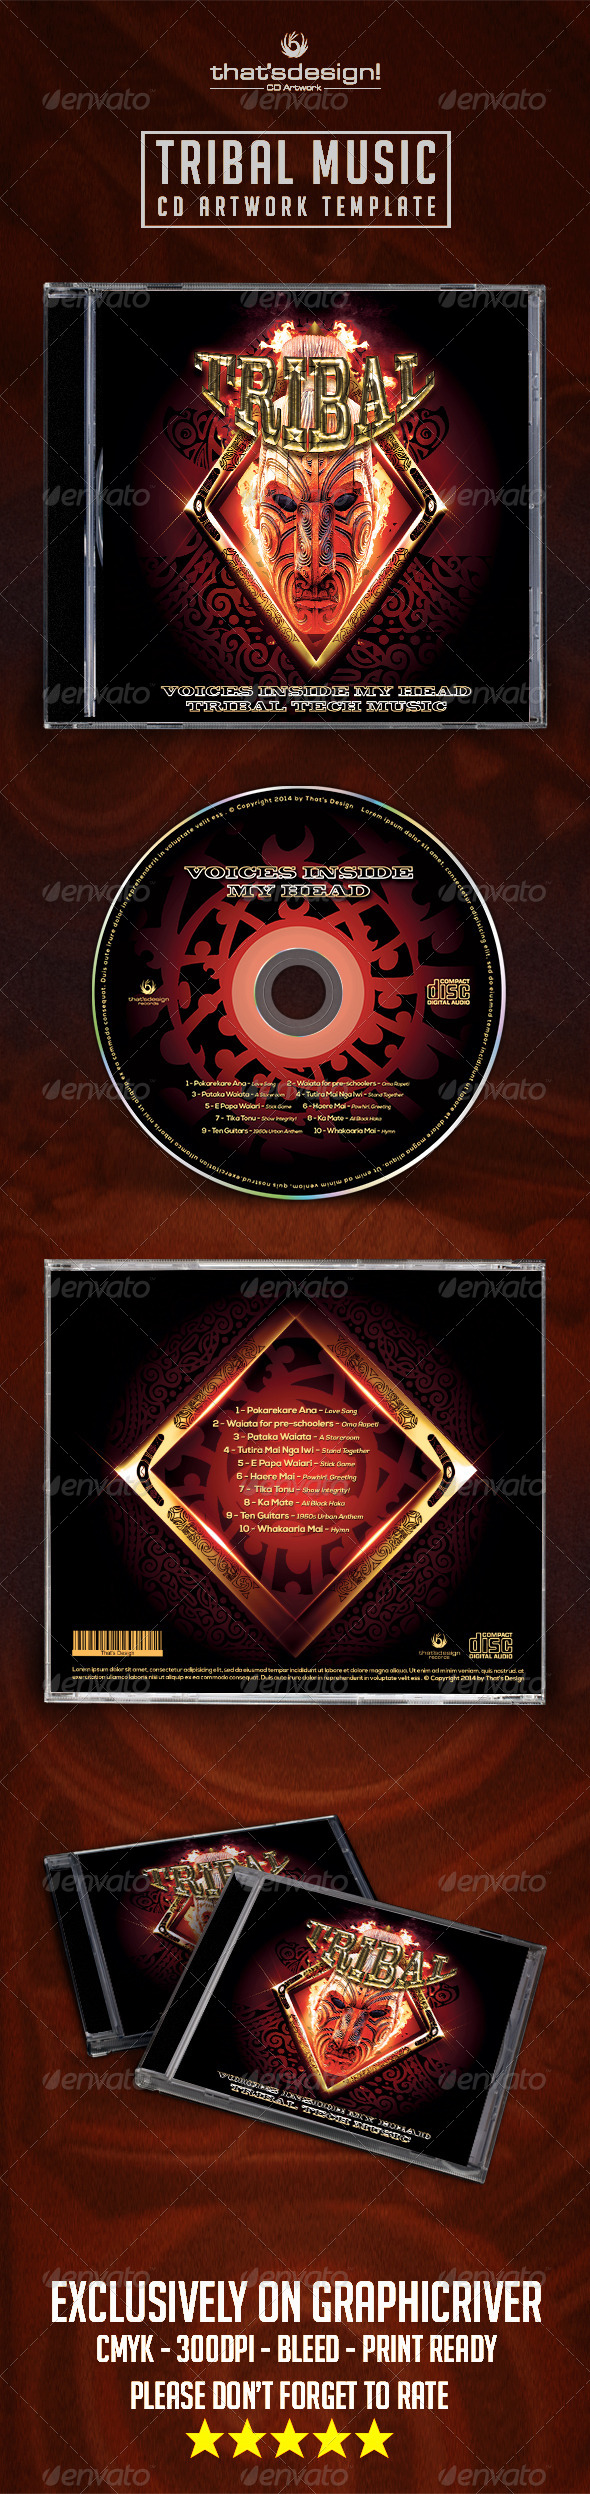 GraphicRiver Tribal Music CD Artwork Template 8262962